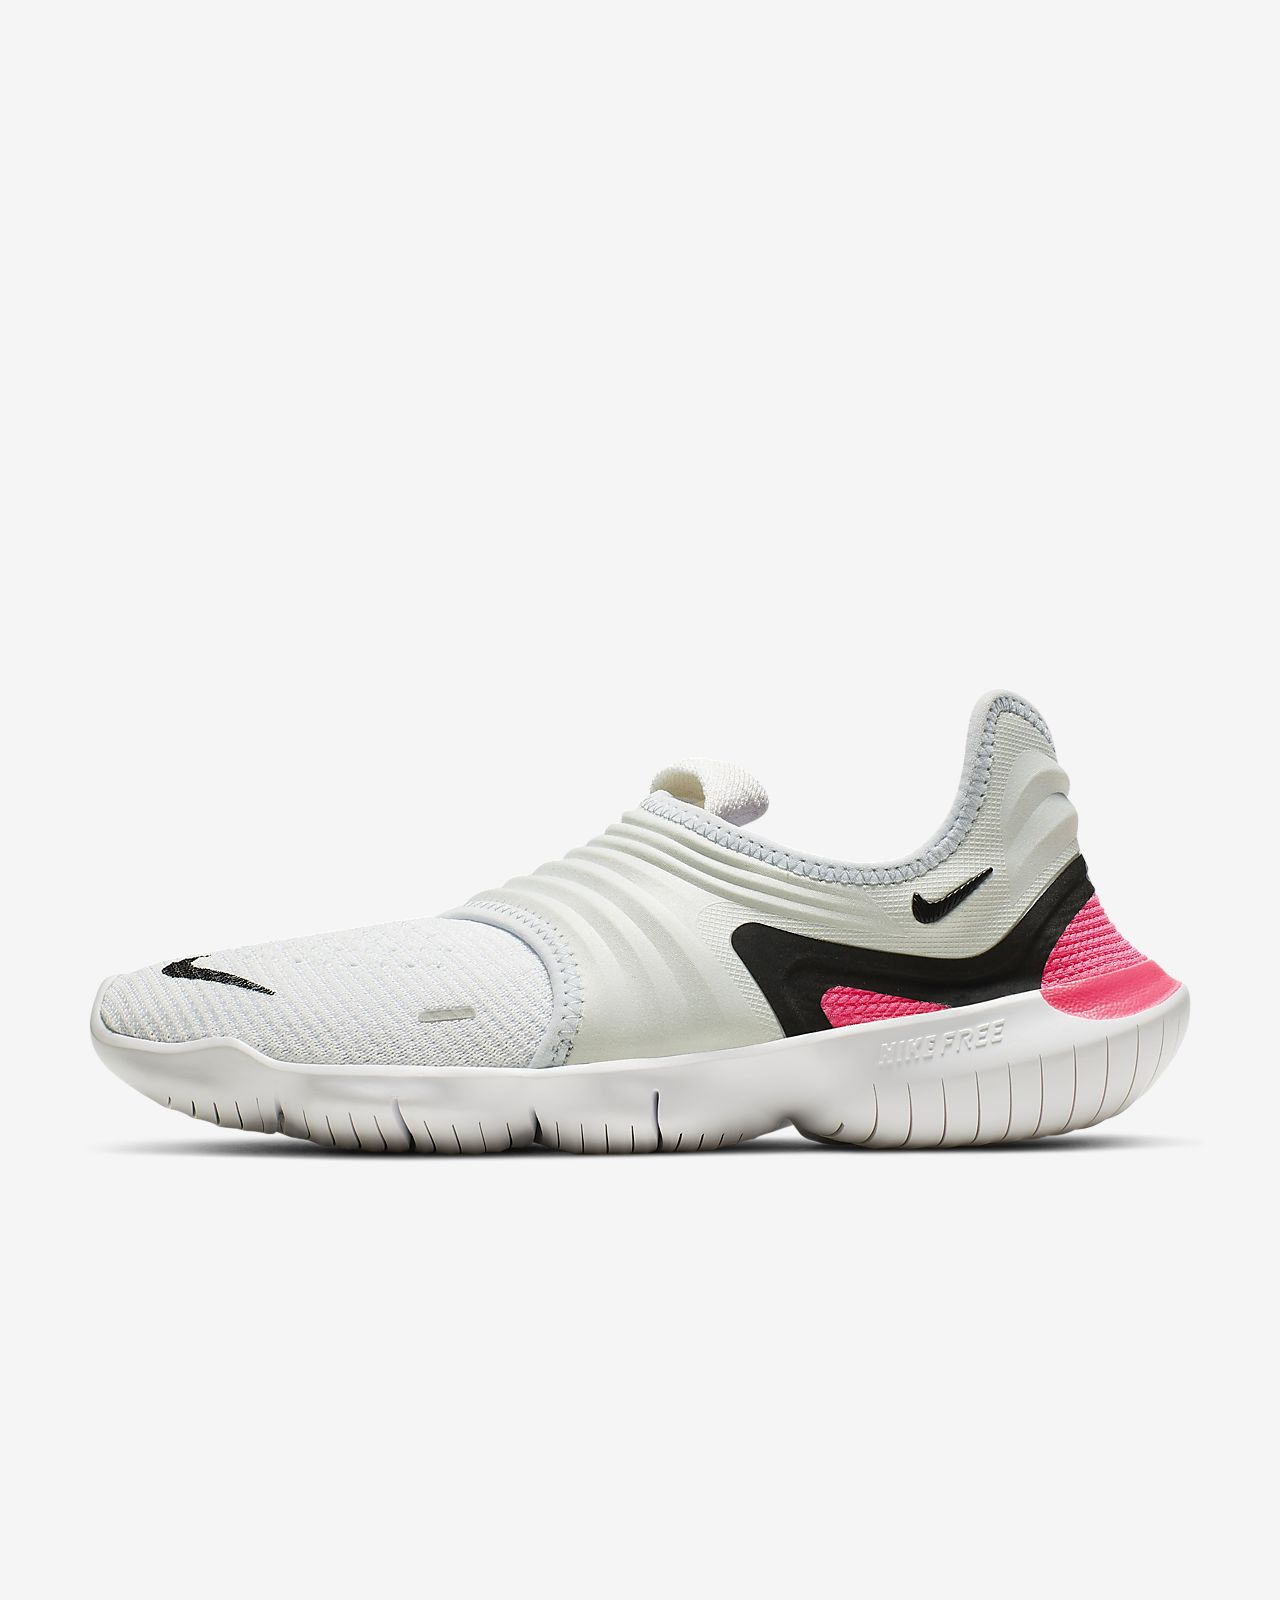 the best attitude fe1c4 2cbad ... Chaussure de running Nike Free RN Flyknit 3.0 pour Femme